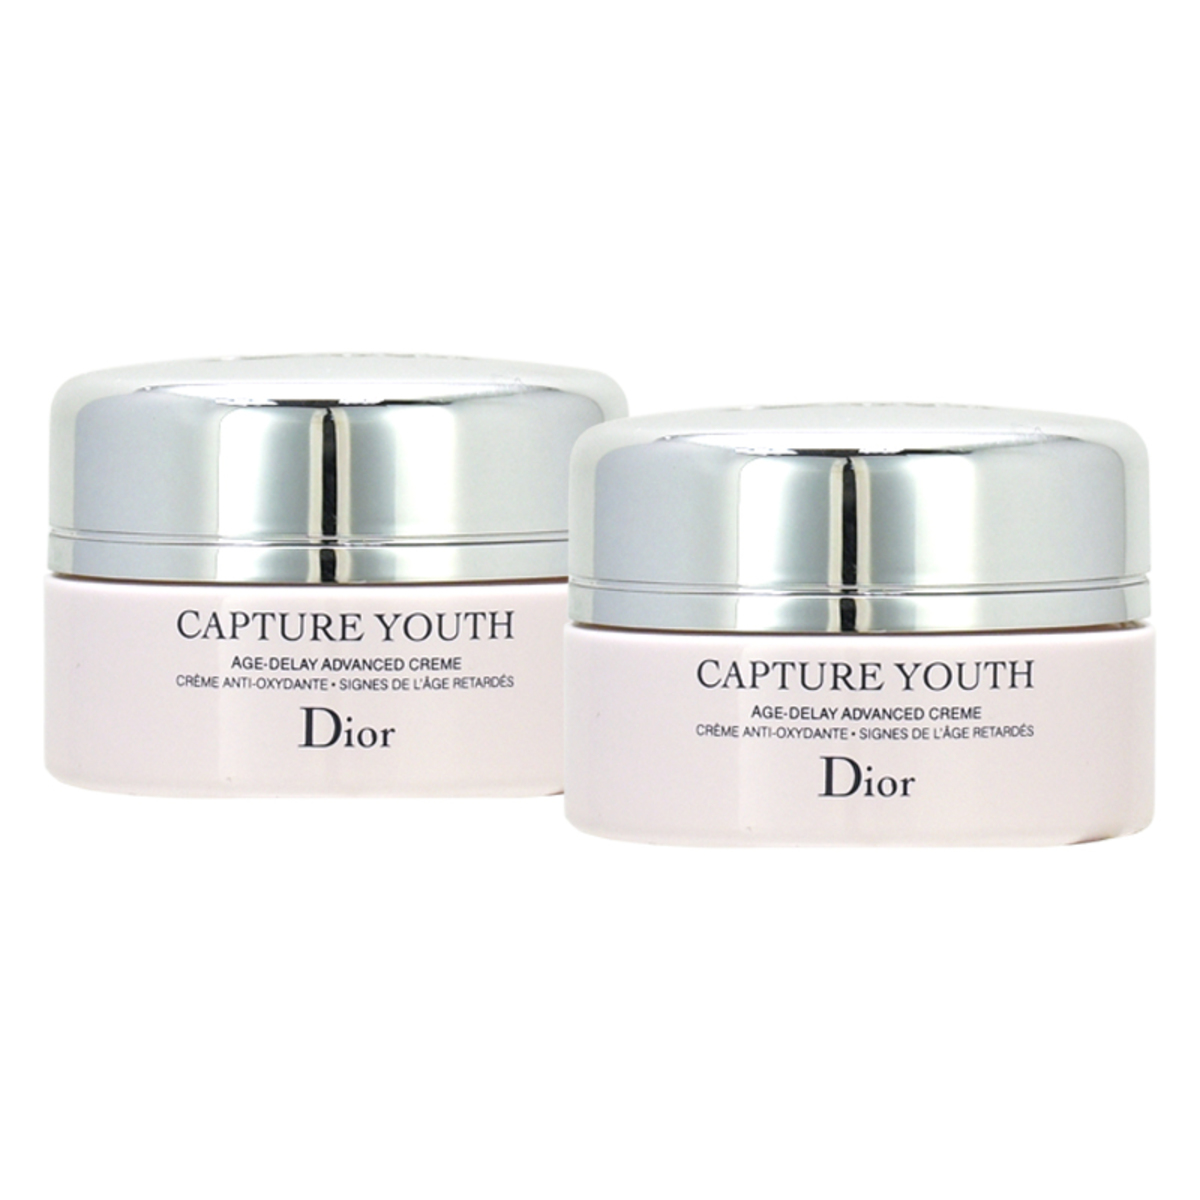 3bff00bbf04 Capture Youth Age-Delay Advanced Crème 15ml x 2pcs -  Parallel Import  Product